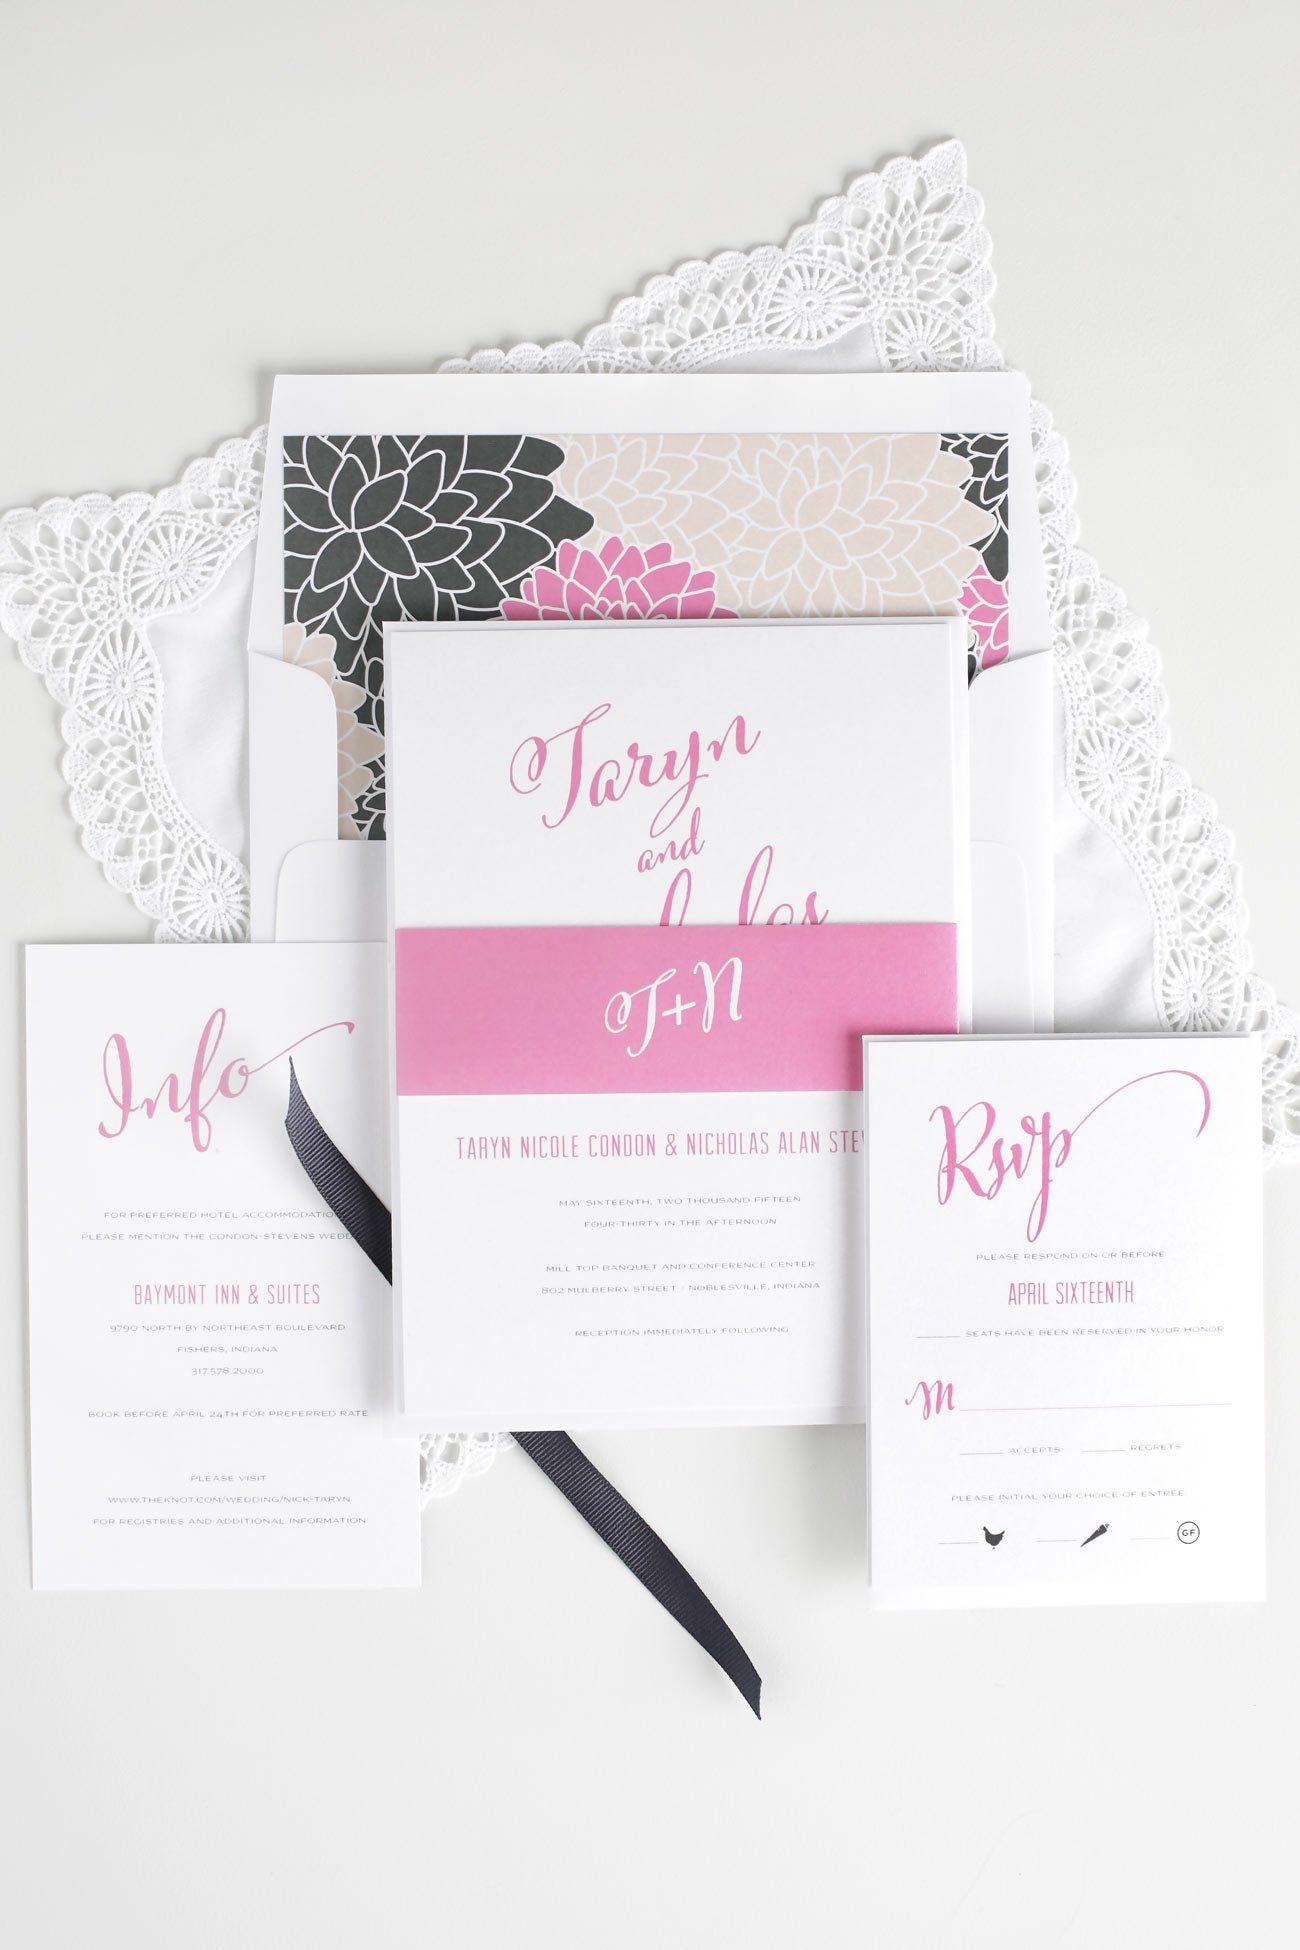 Rose Pink Wedding invitations with a floral envelope liner